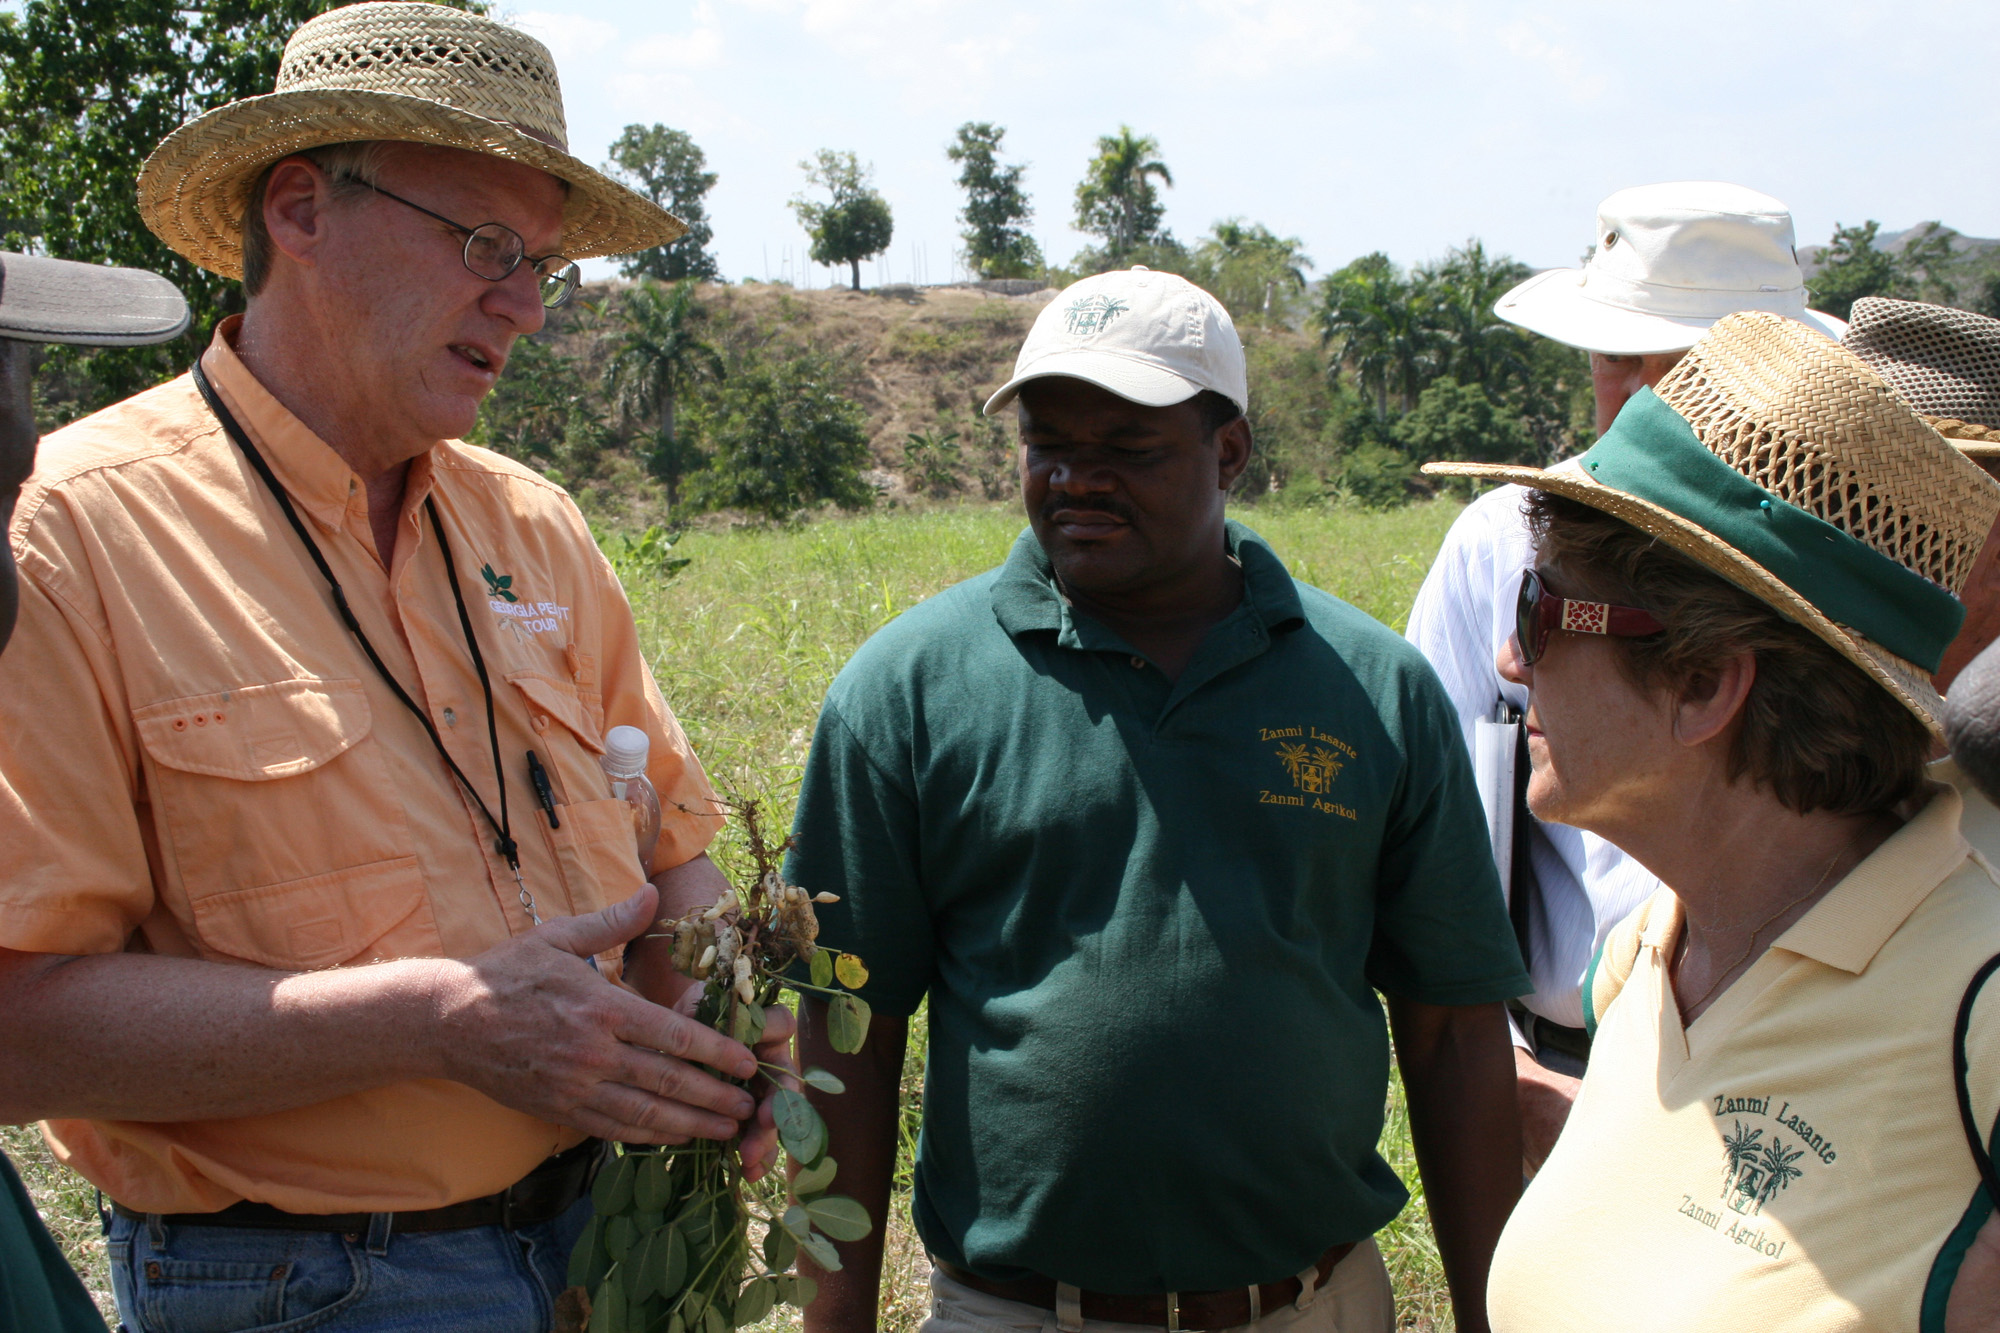 UGA Cooperative Extension assistant dean Steve Brown (left) explains peanut diseases to Zanmi Agrikol agronomist Fereste Sonnius (center) and director Gillaine Warne (right) at one of the organization's farms March 17, 2010.